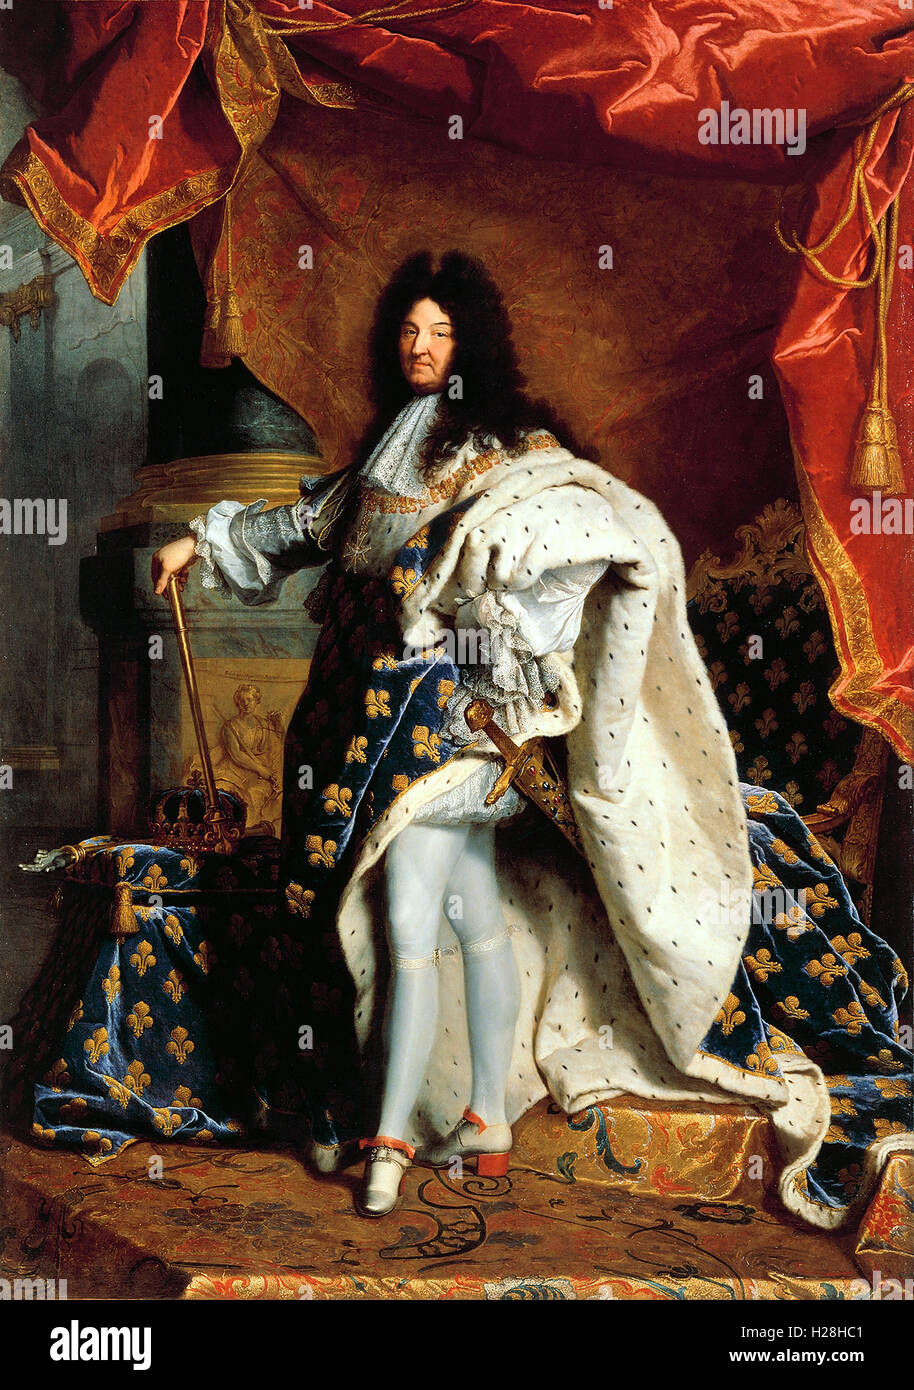 Louis XIV of France, King of France - Stock Image